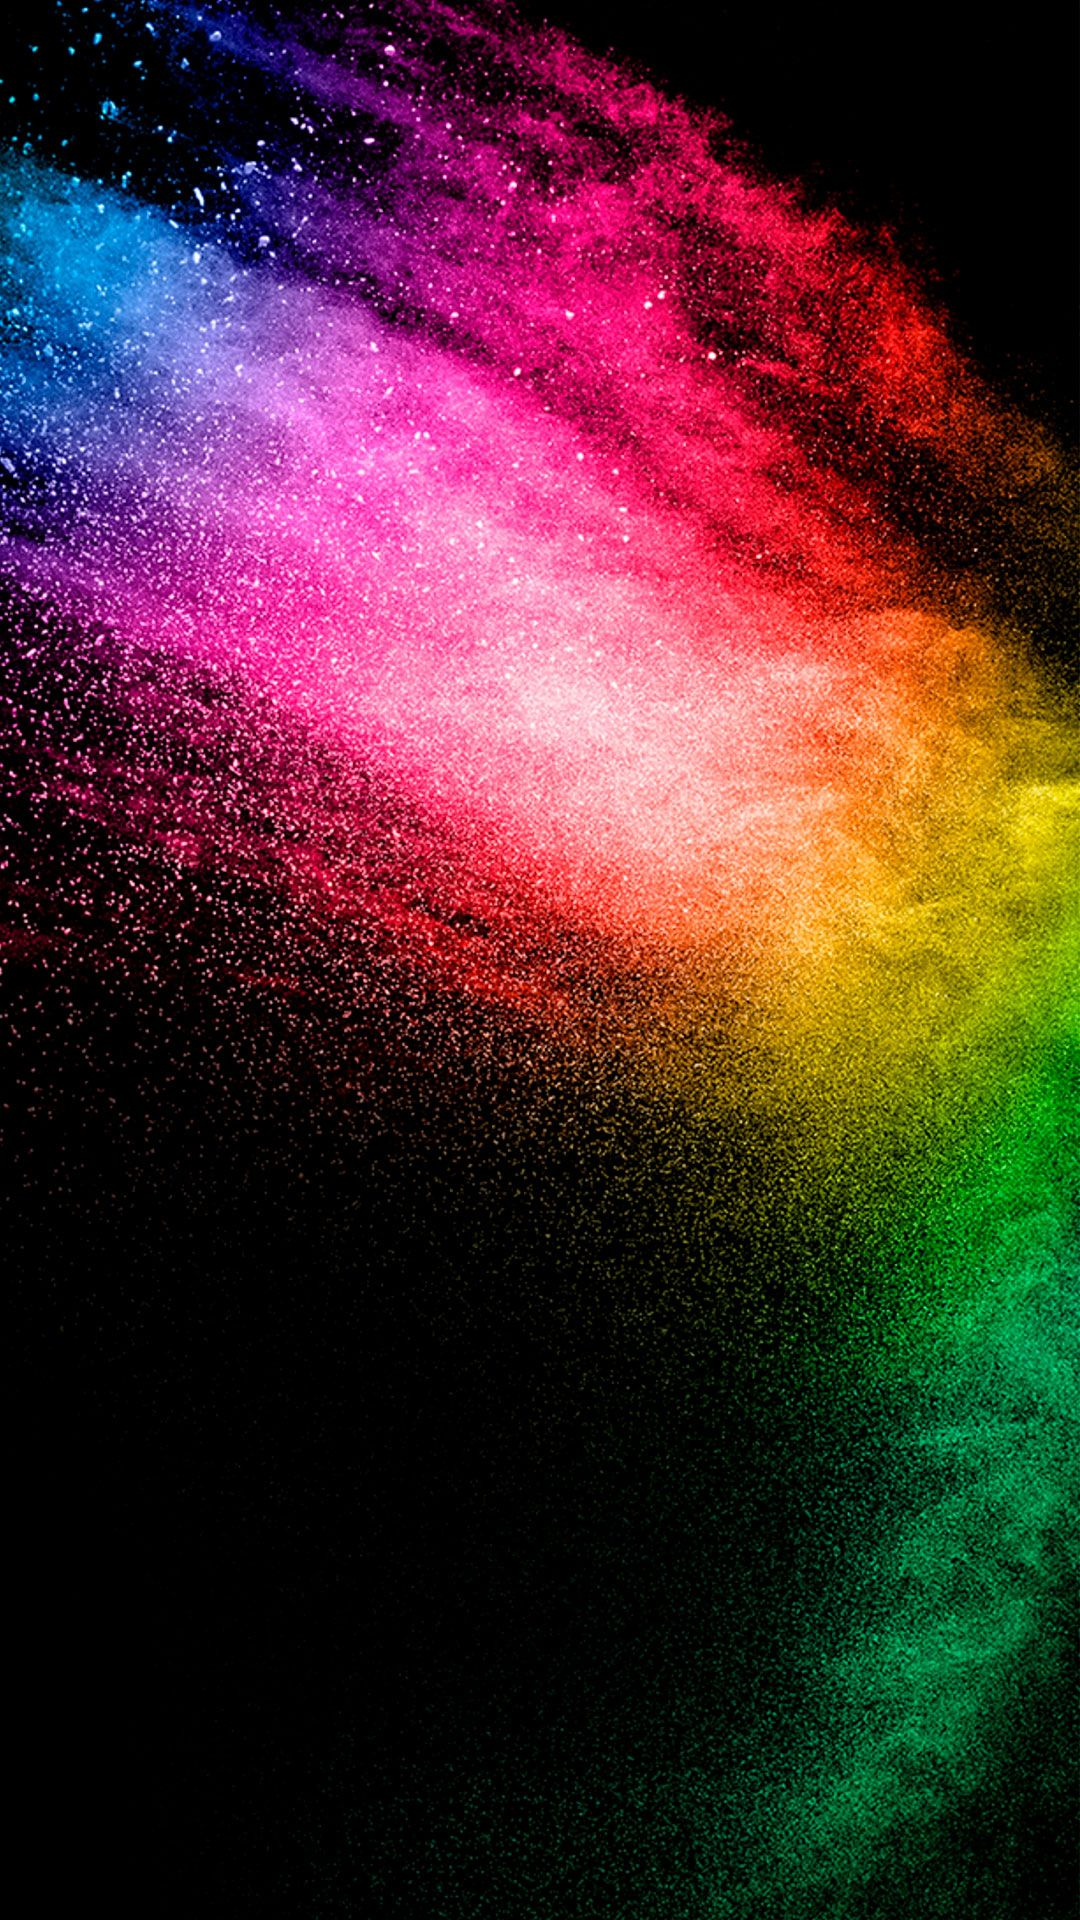 Rainbow Colored Light Particles With Images Hd Wallpaper